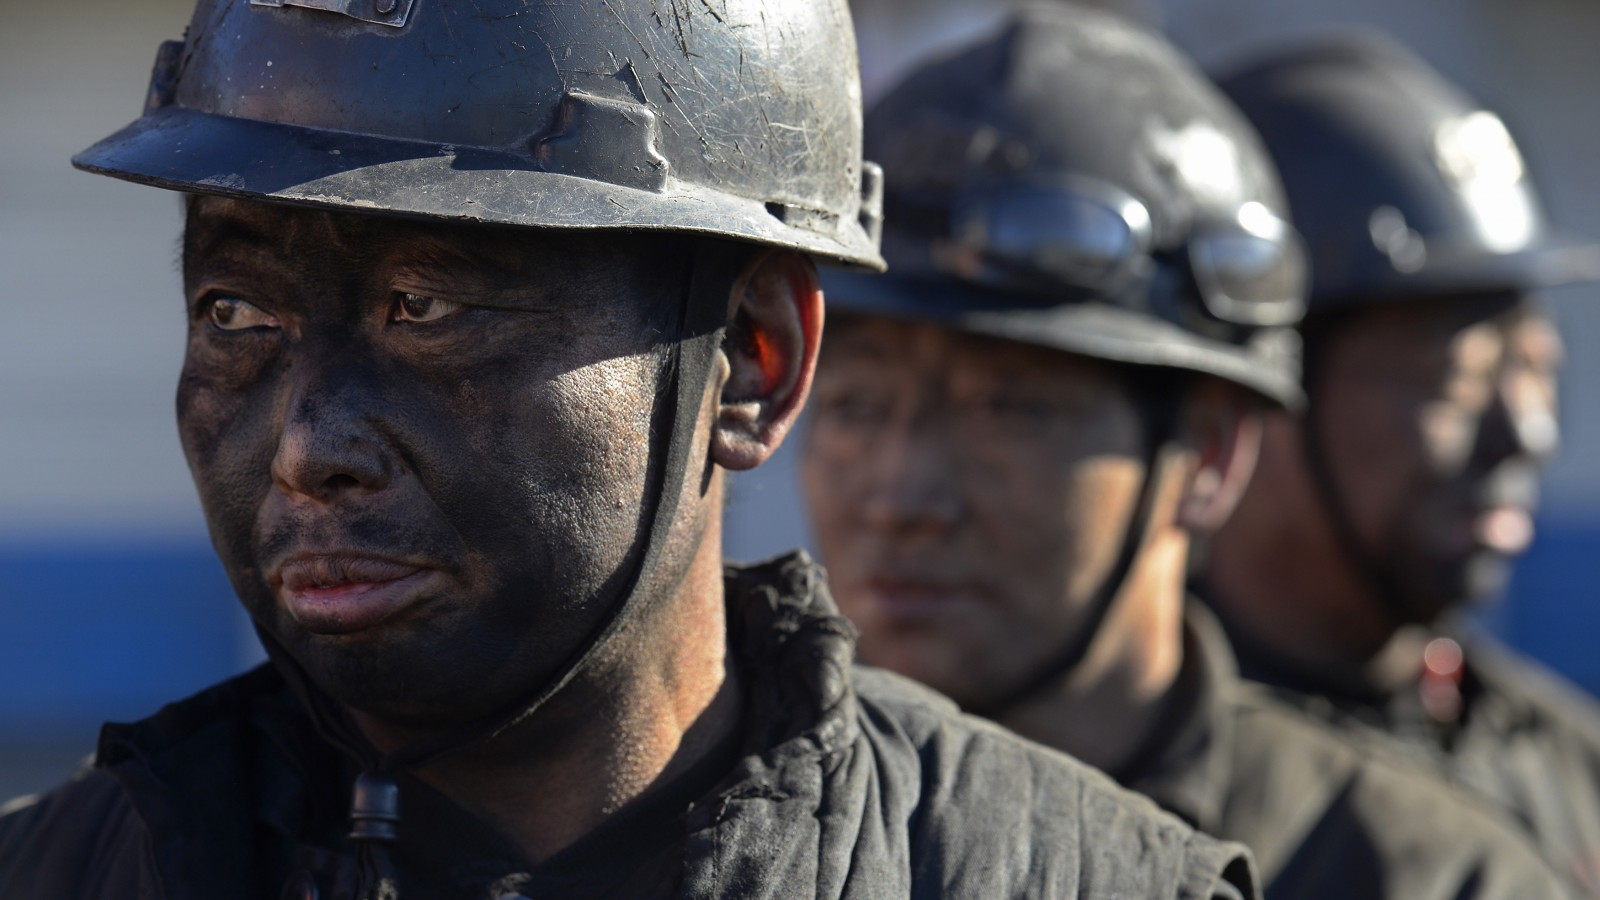 Miners wait in lines to shower during a break near a coal mine in Heshun county, Shanxi province